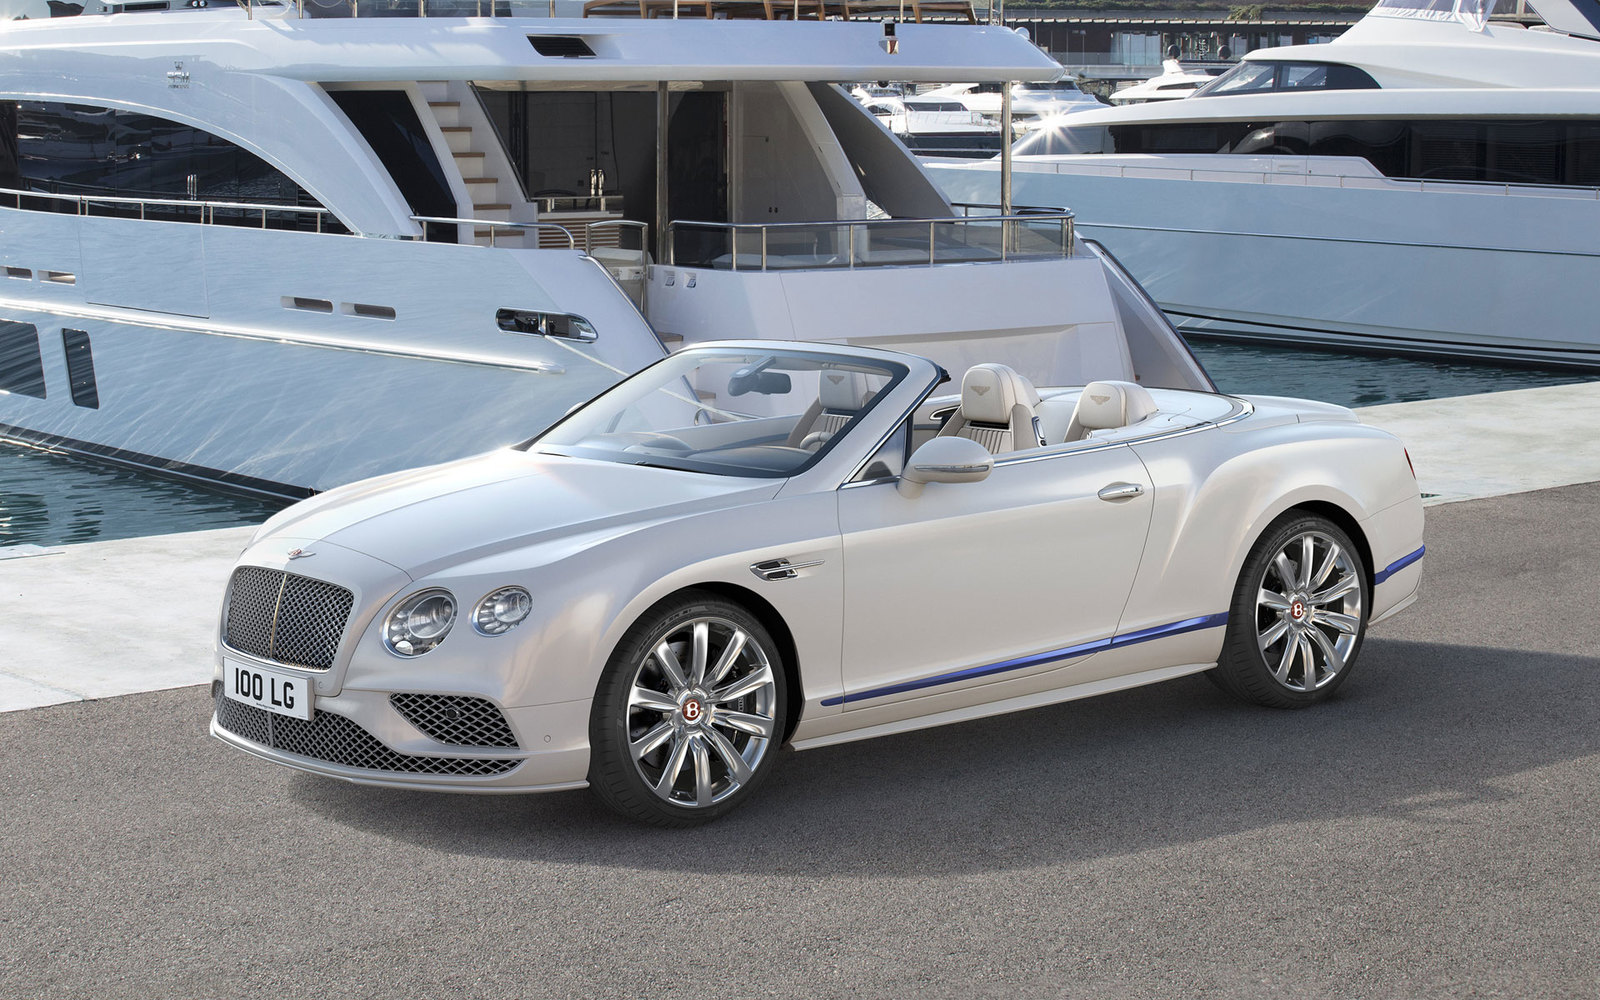 Bentley GT Cabrio Sonderedition